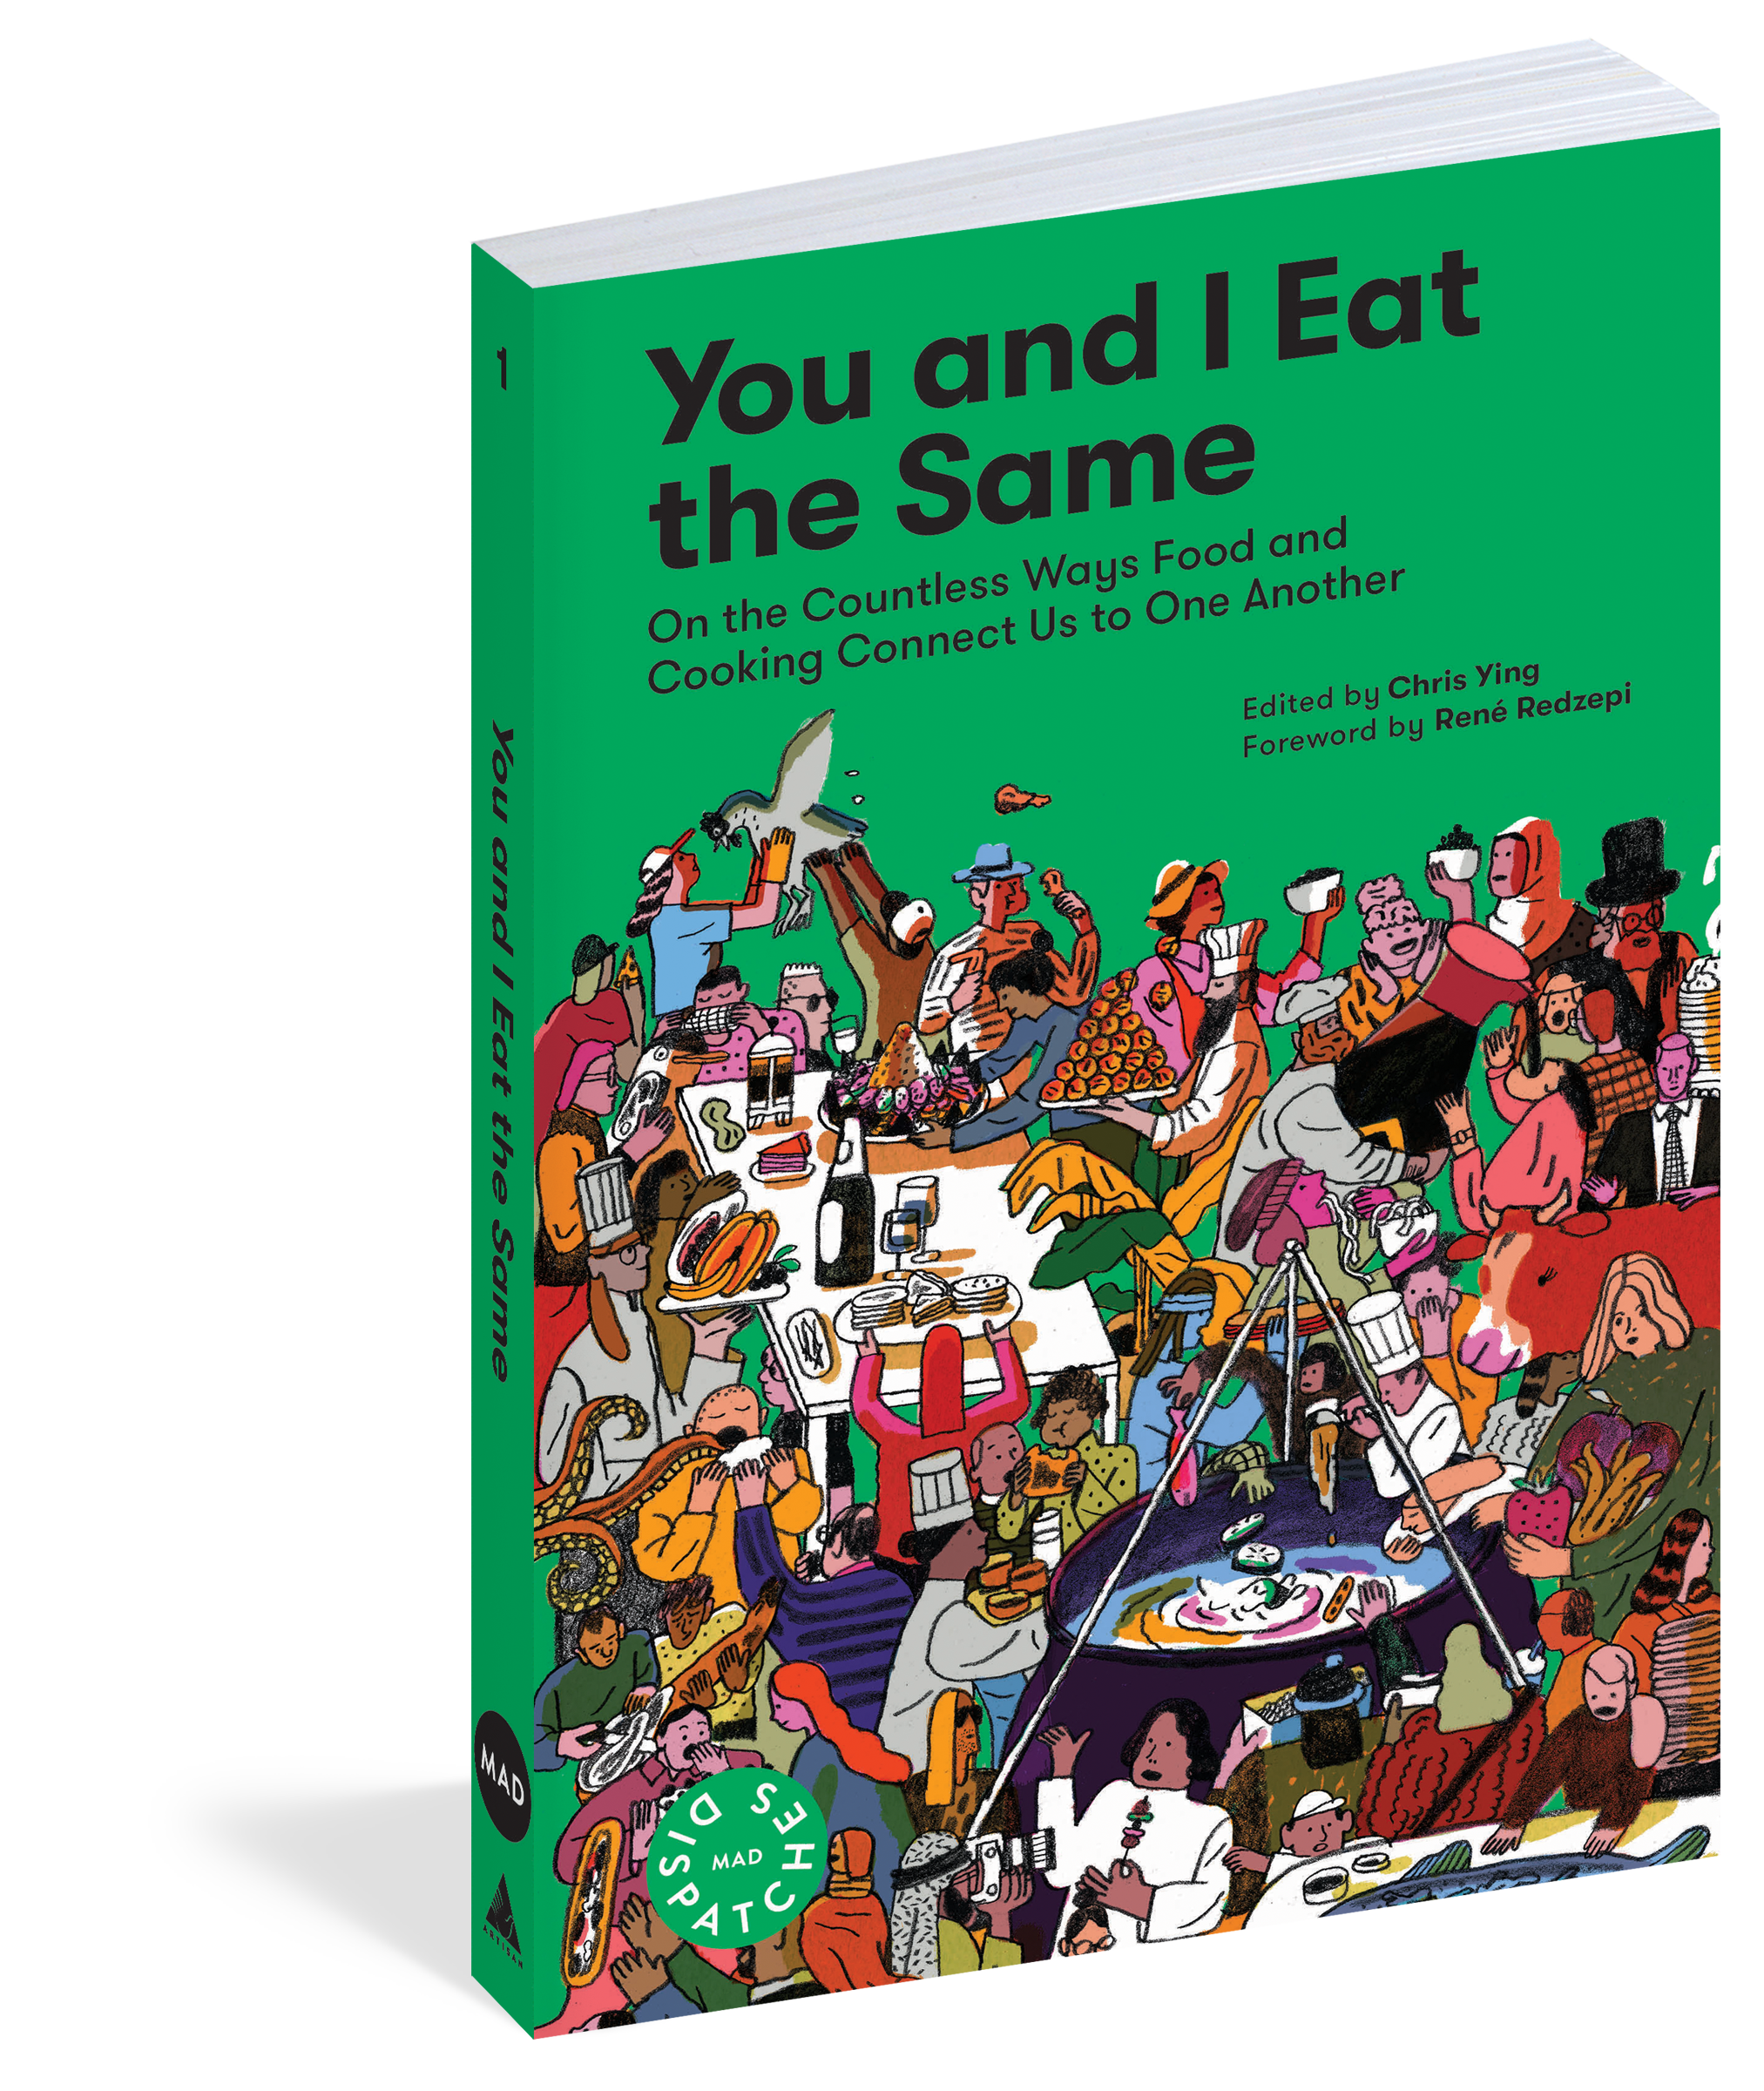 You and I Eat the Same - Workman Publishing